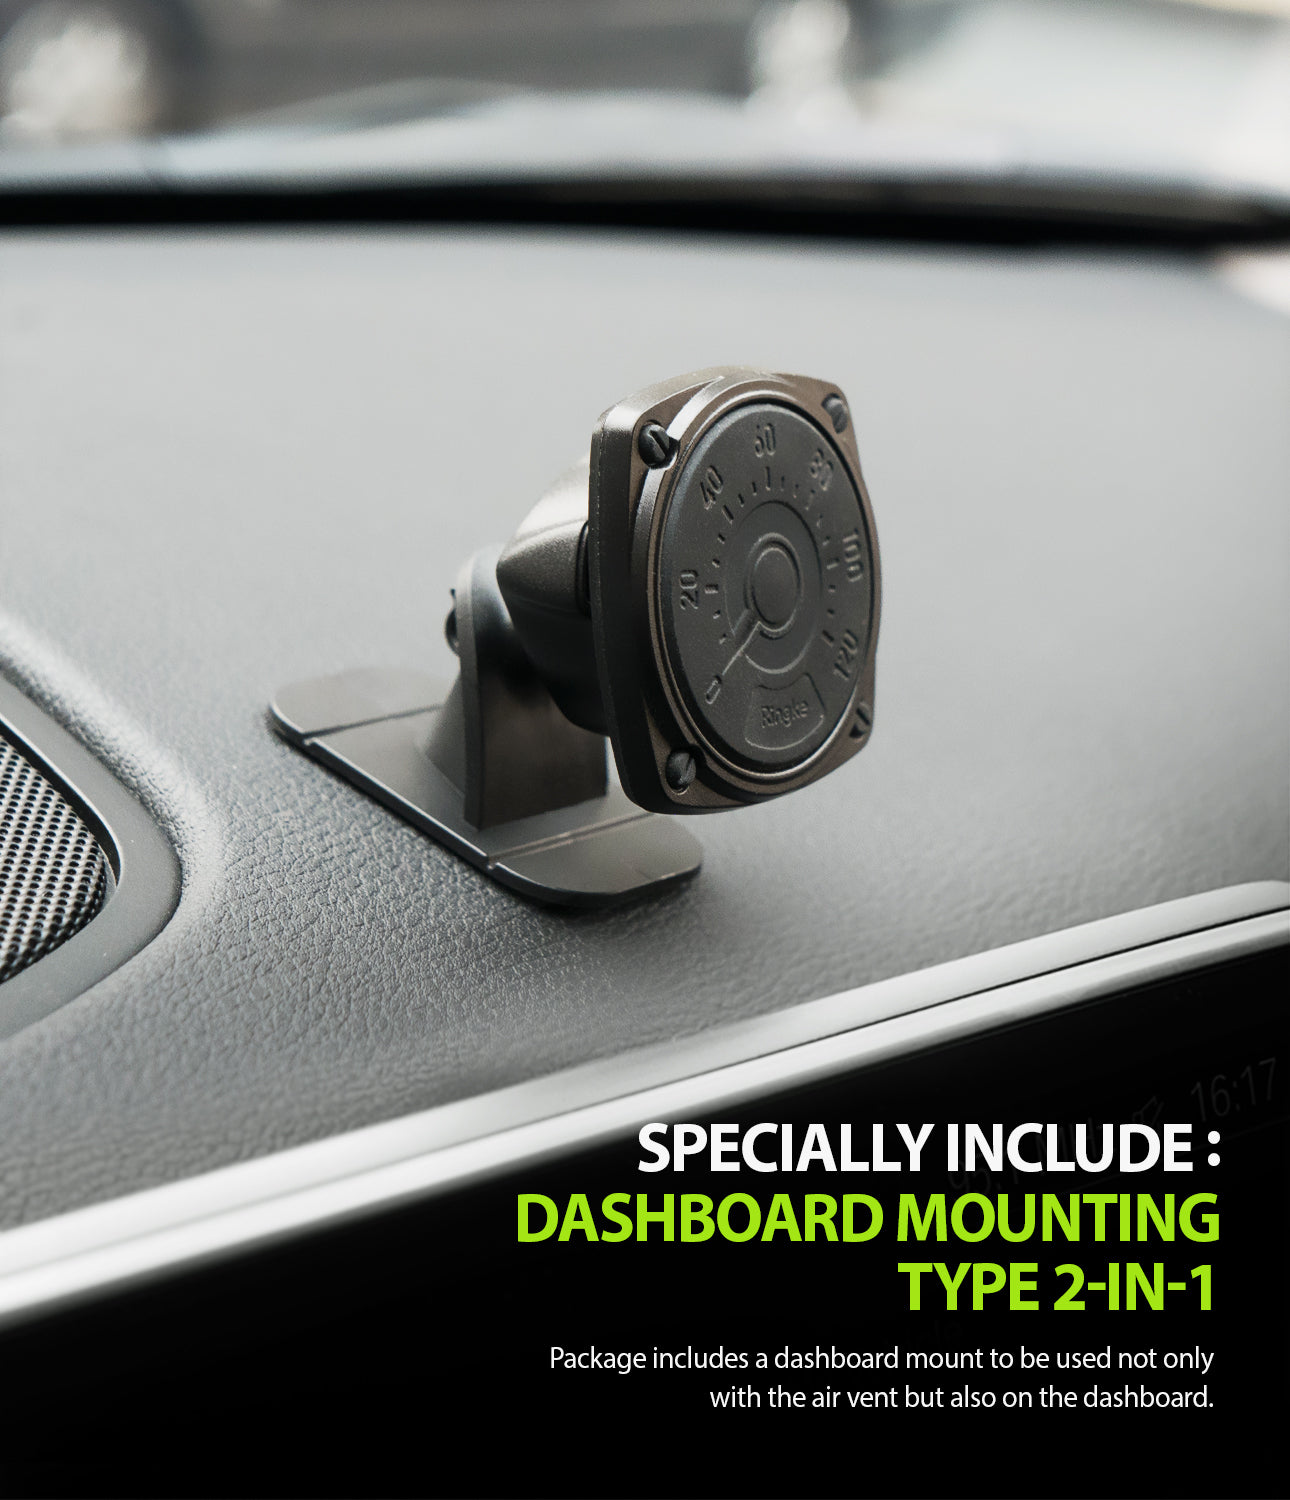 power Clip Air Vent Car Mount - dashboard mounting type included